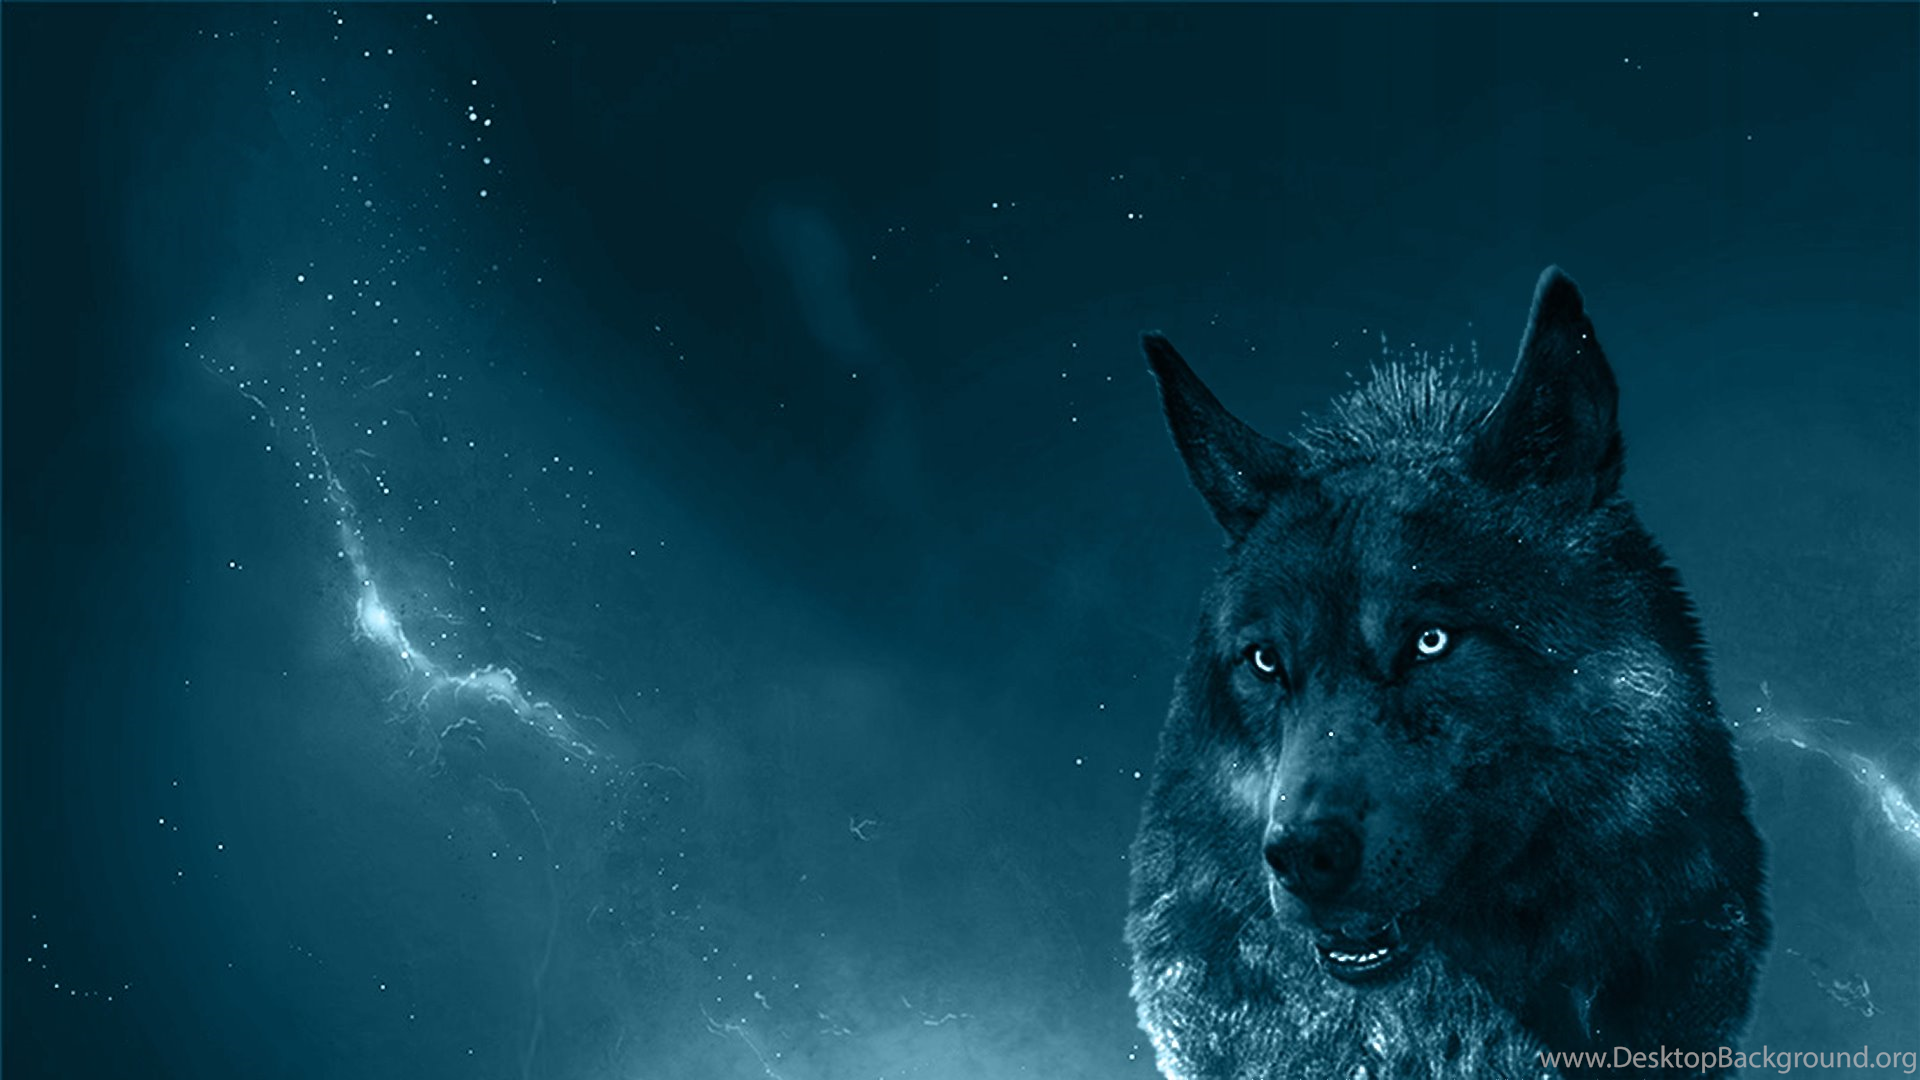 Wolf Wallpaper Download Blue Wolf 129567 Hd Wallpaper Backgrounds Download